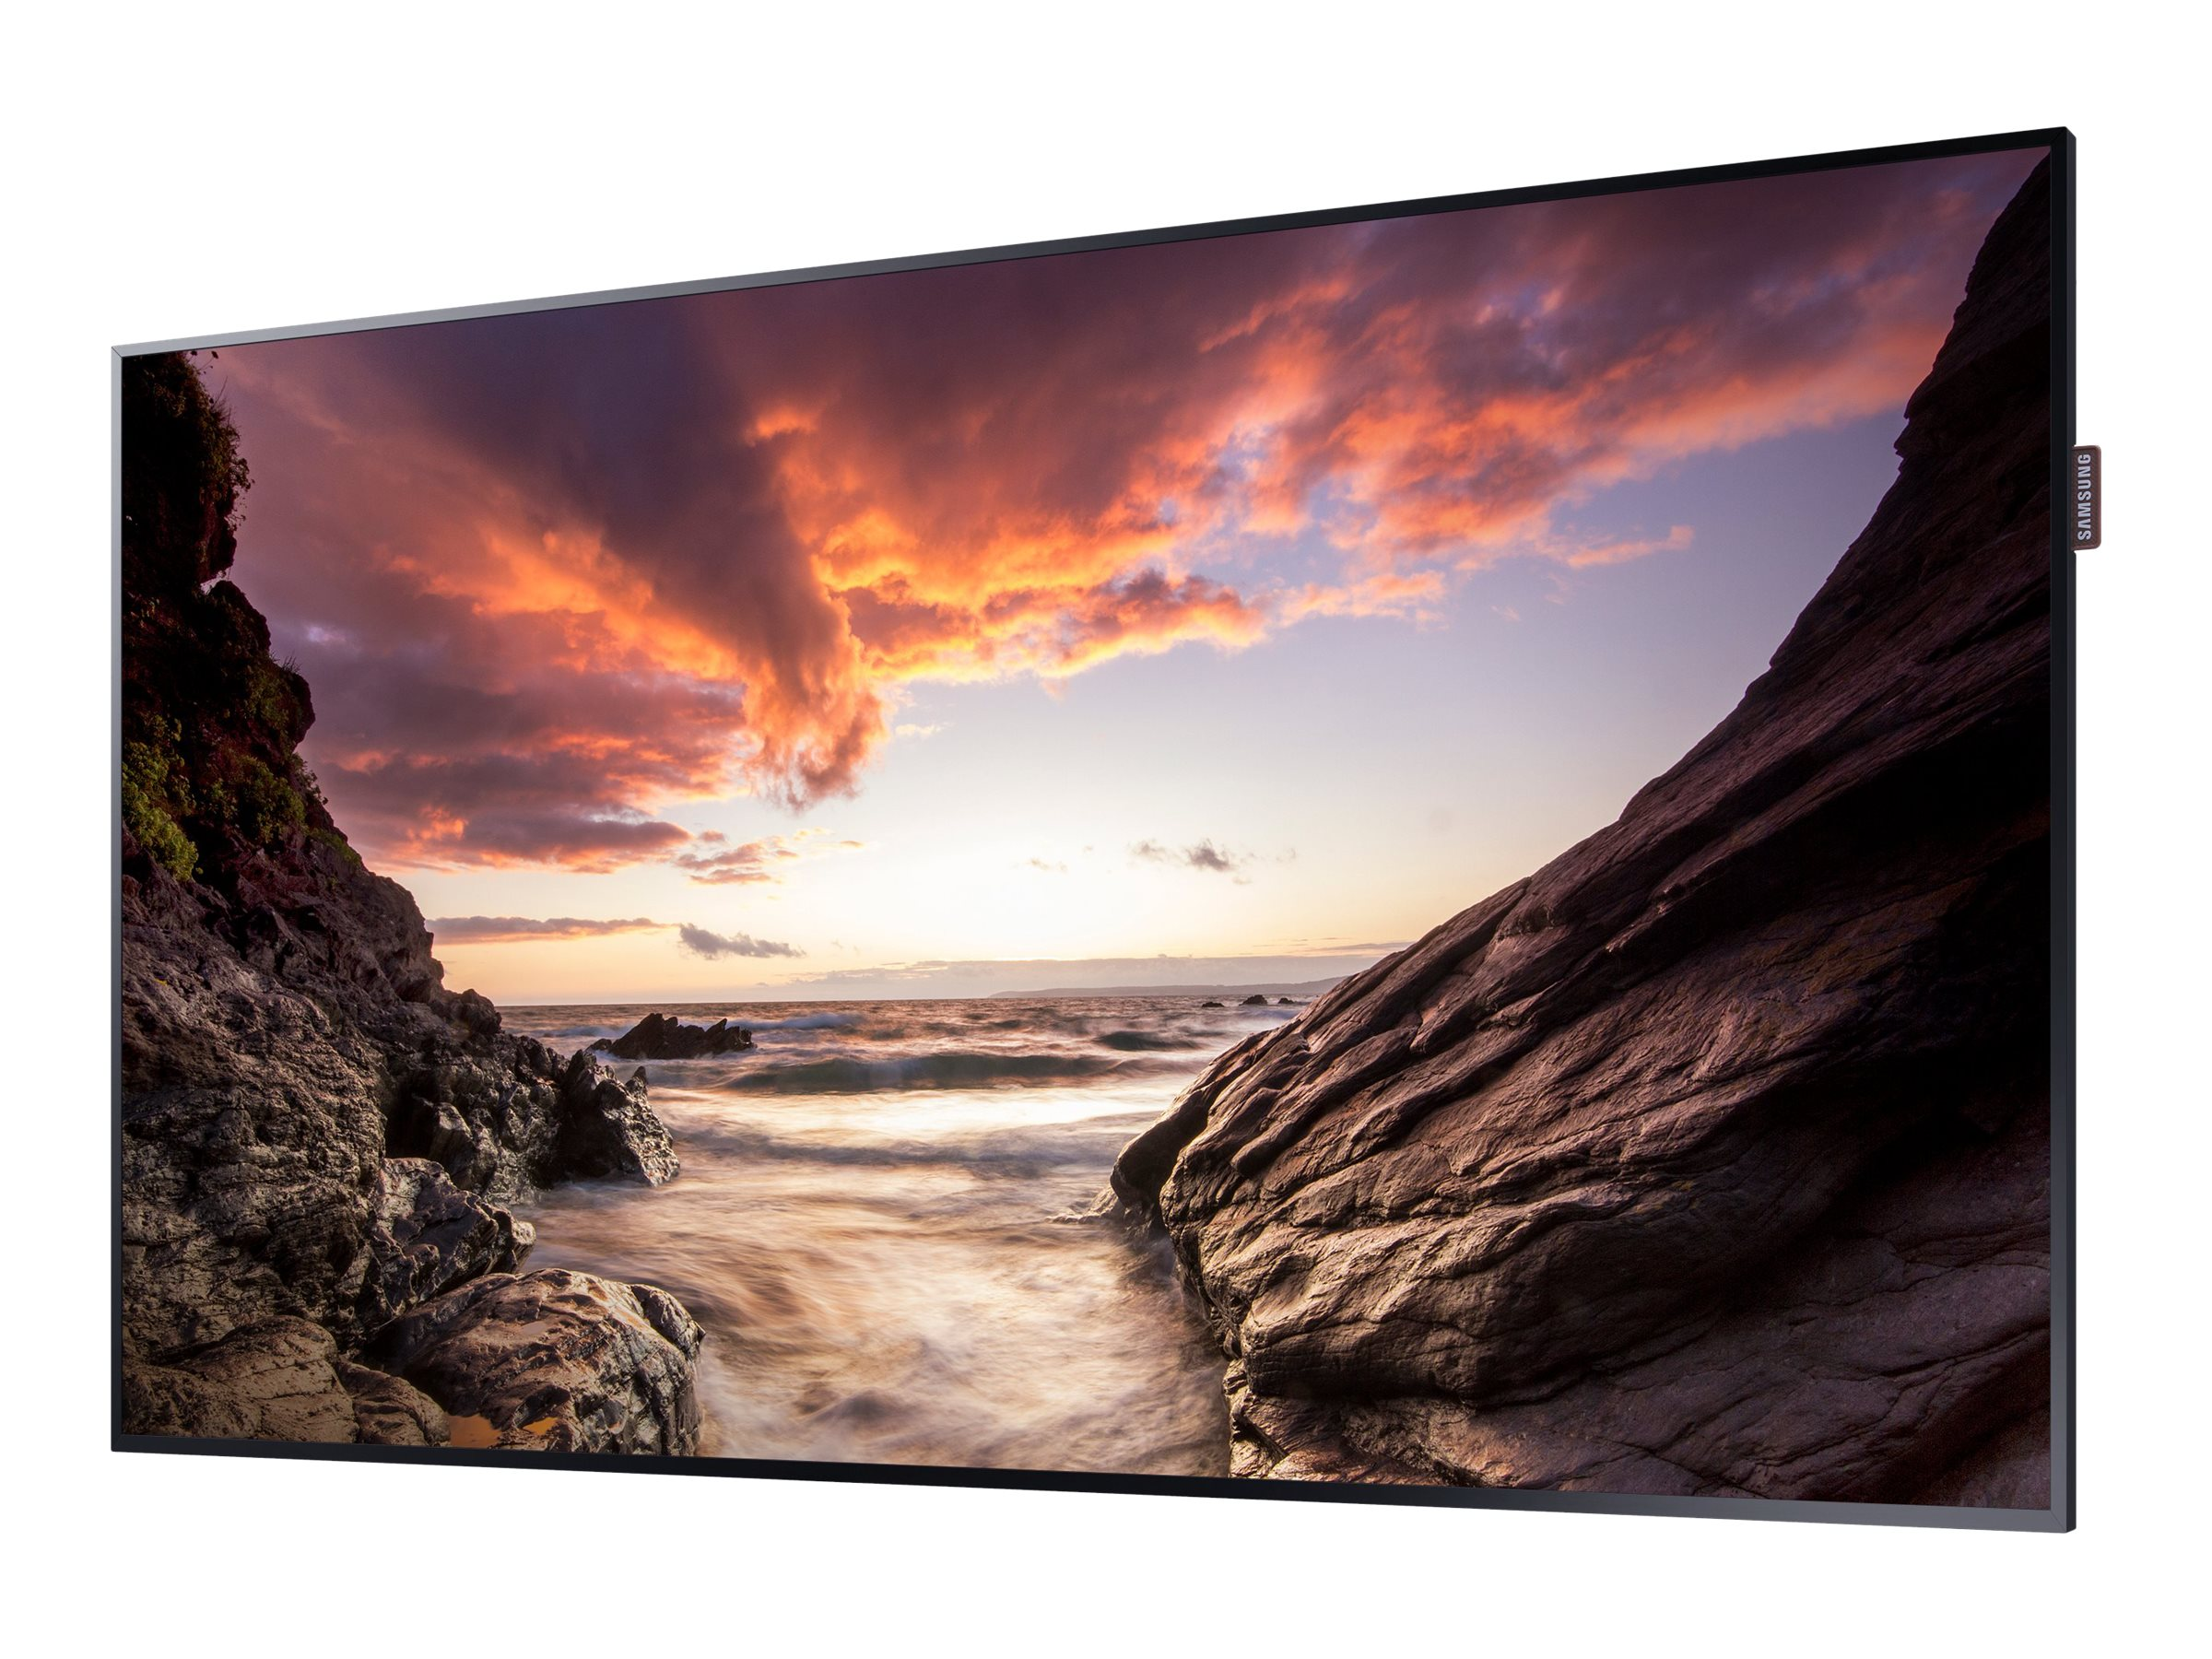 Samsung 49 PHF Full HD LED-LCD Display, Black, PH49F